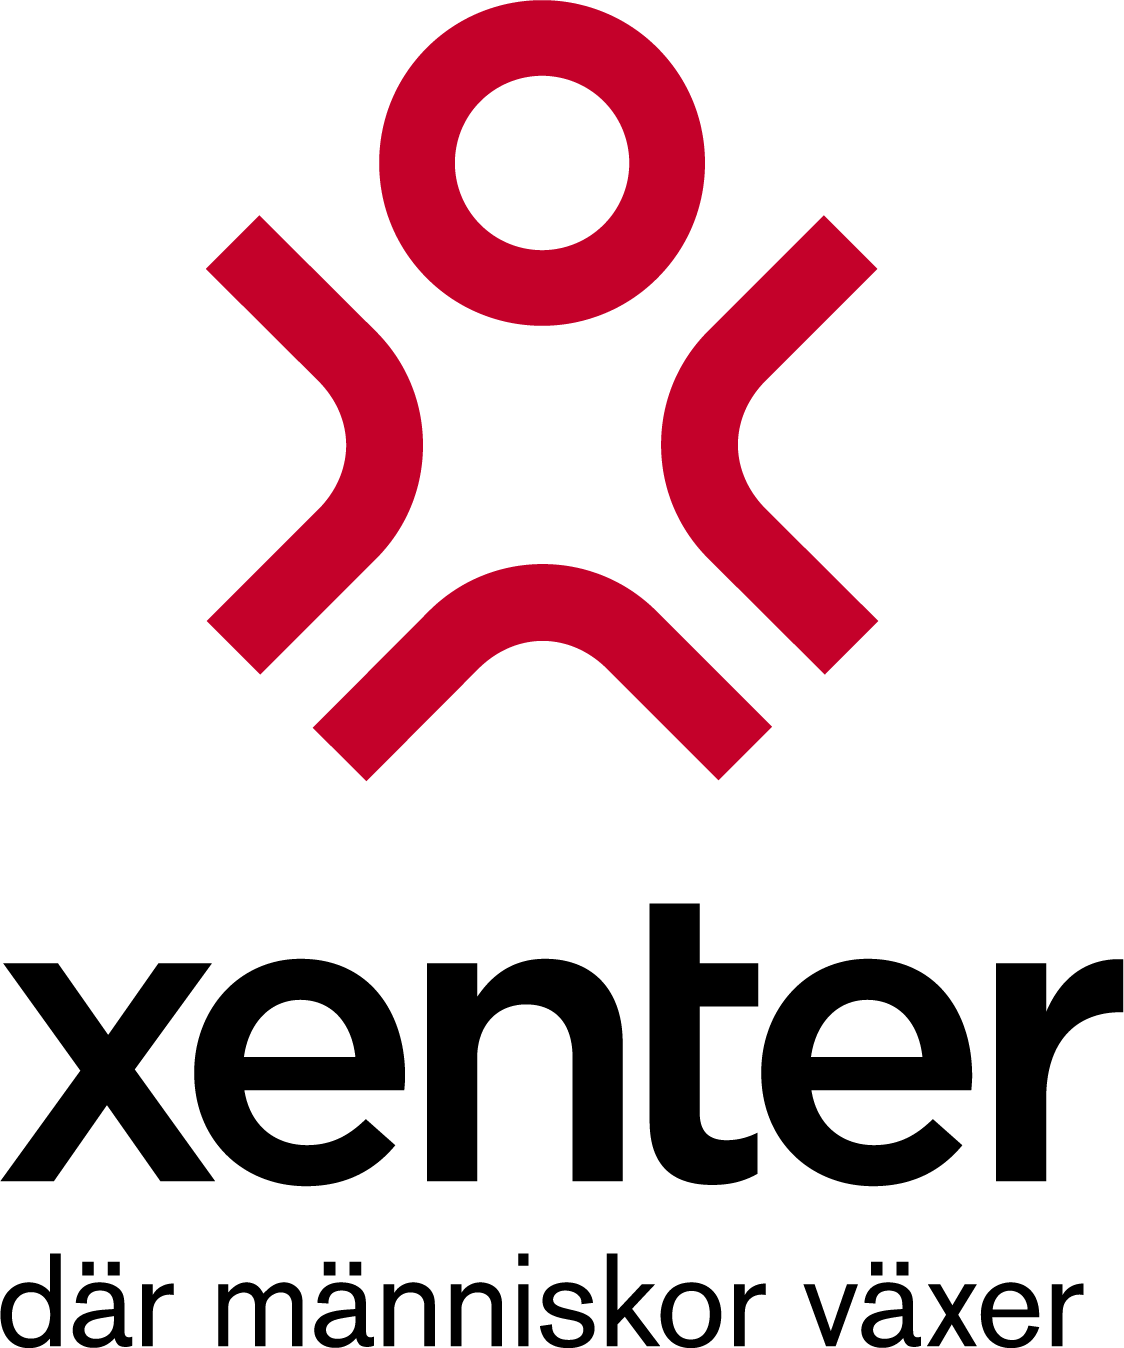 Xenters logotyp